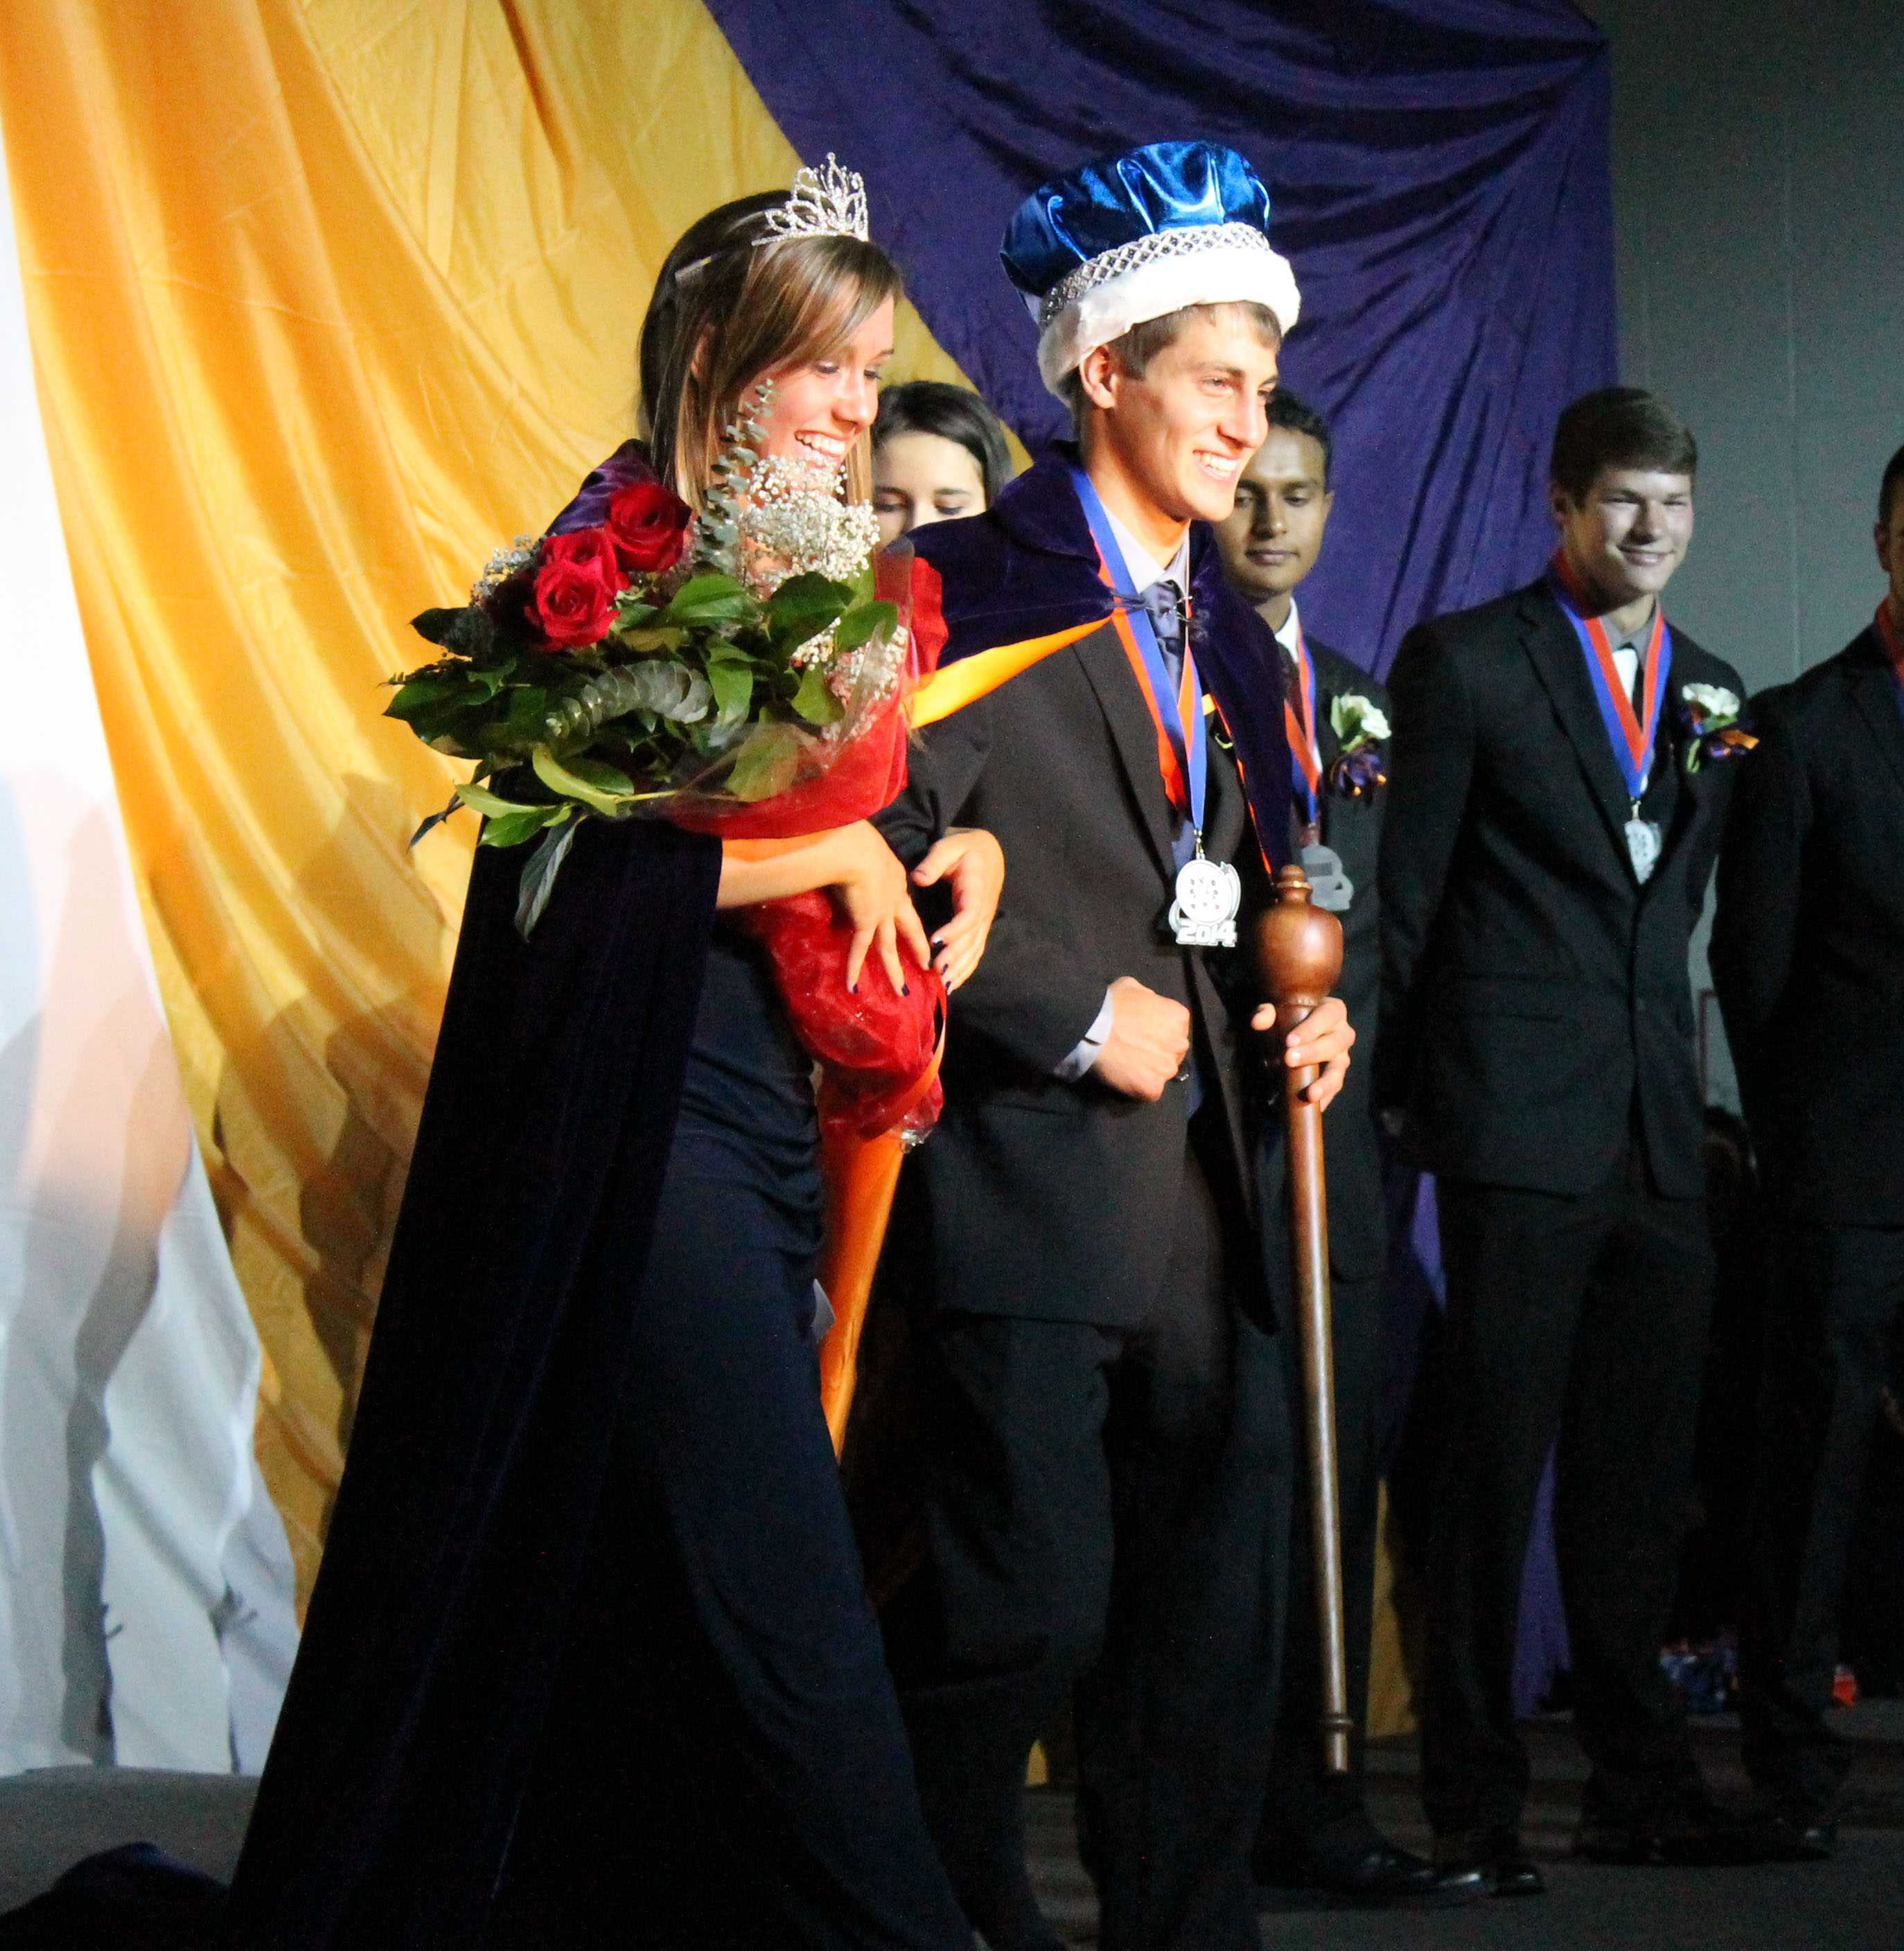 King Zack Masciopinto and Queen Teagan Nelson parade around the gym after having just been crowned.